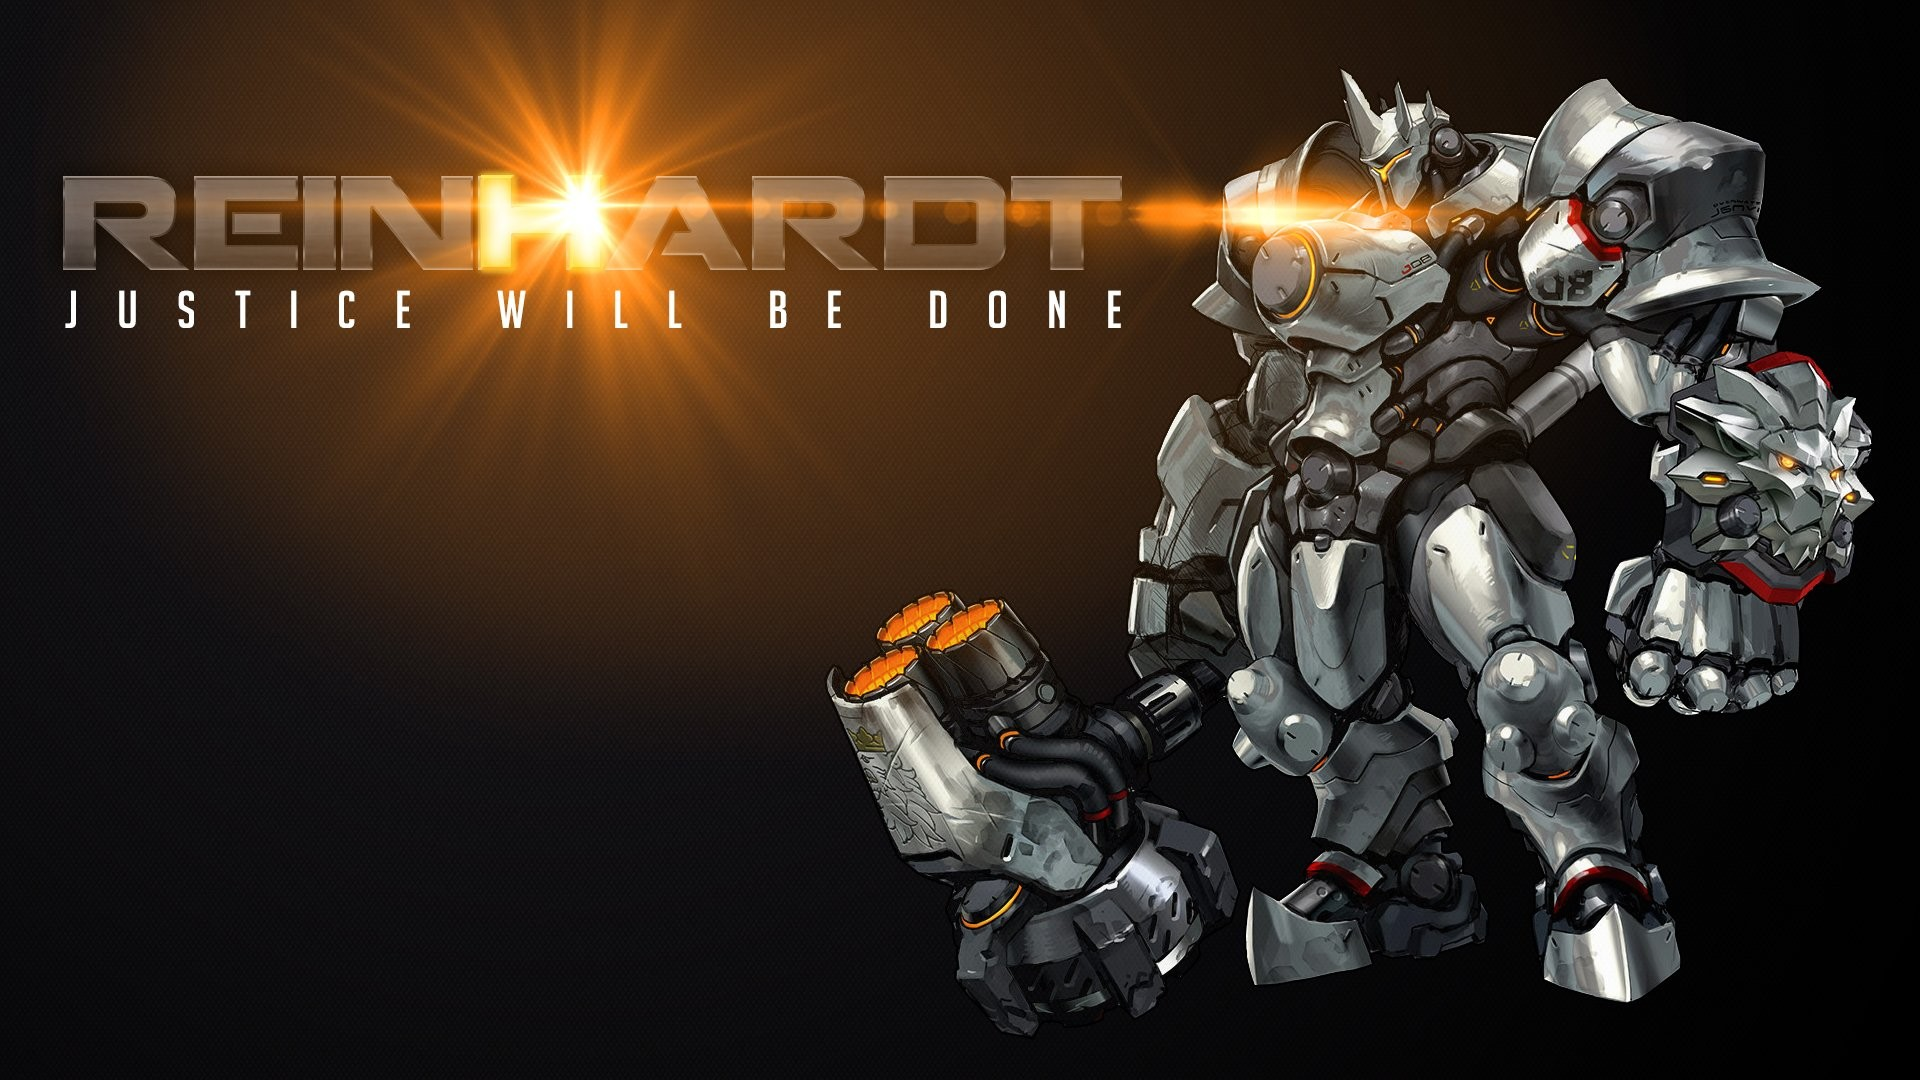 Overwatch Wallpaper 1080p Download Free Cool High: Overwatch Reinhardt Wallpaper ·① Download Free Cool High